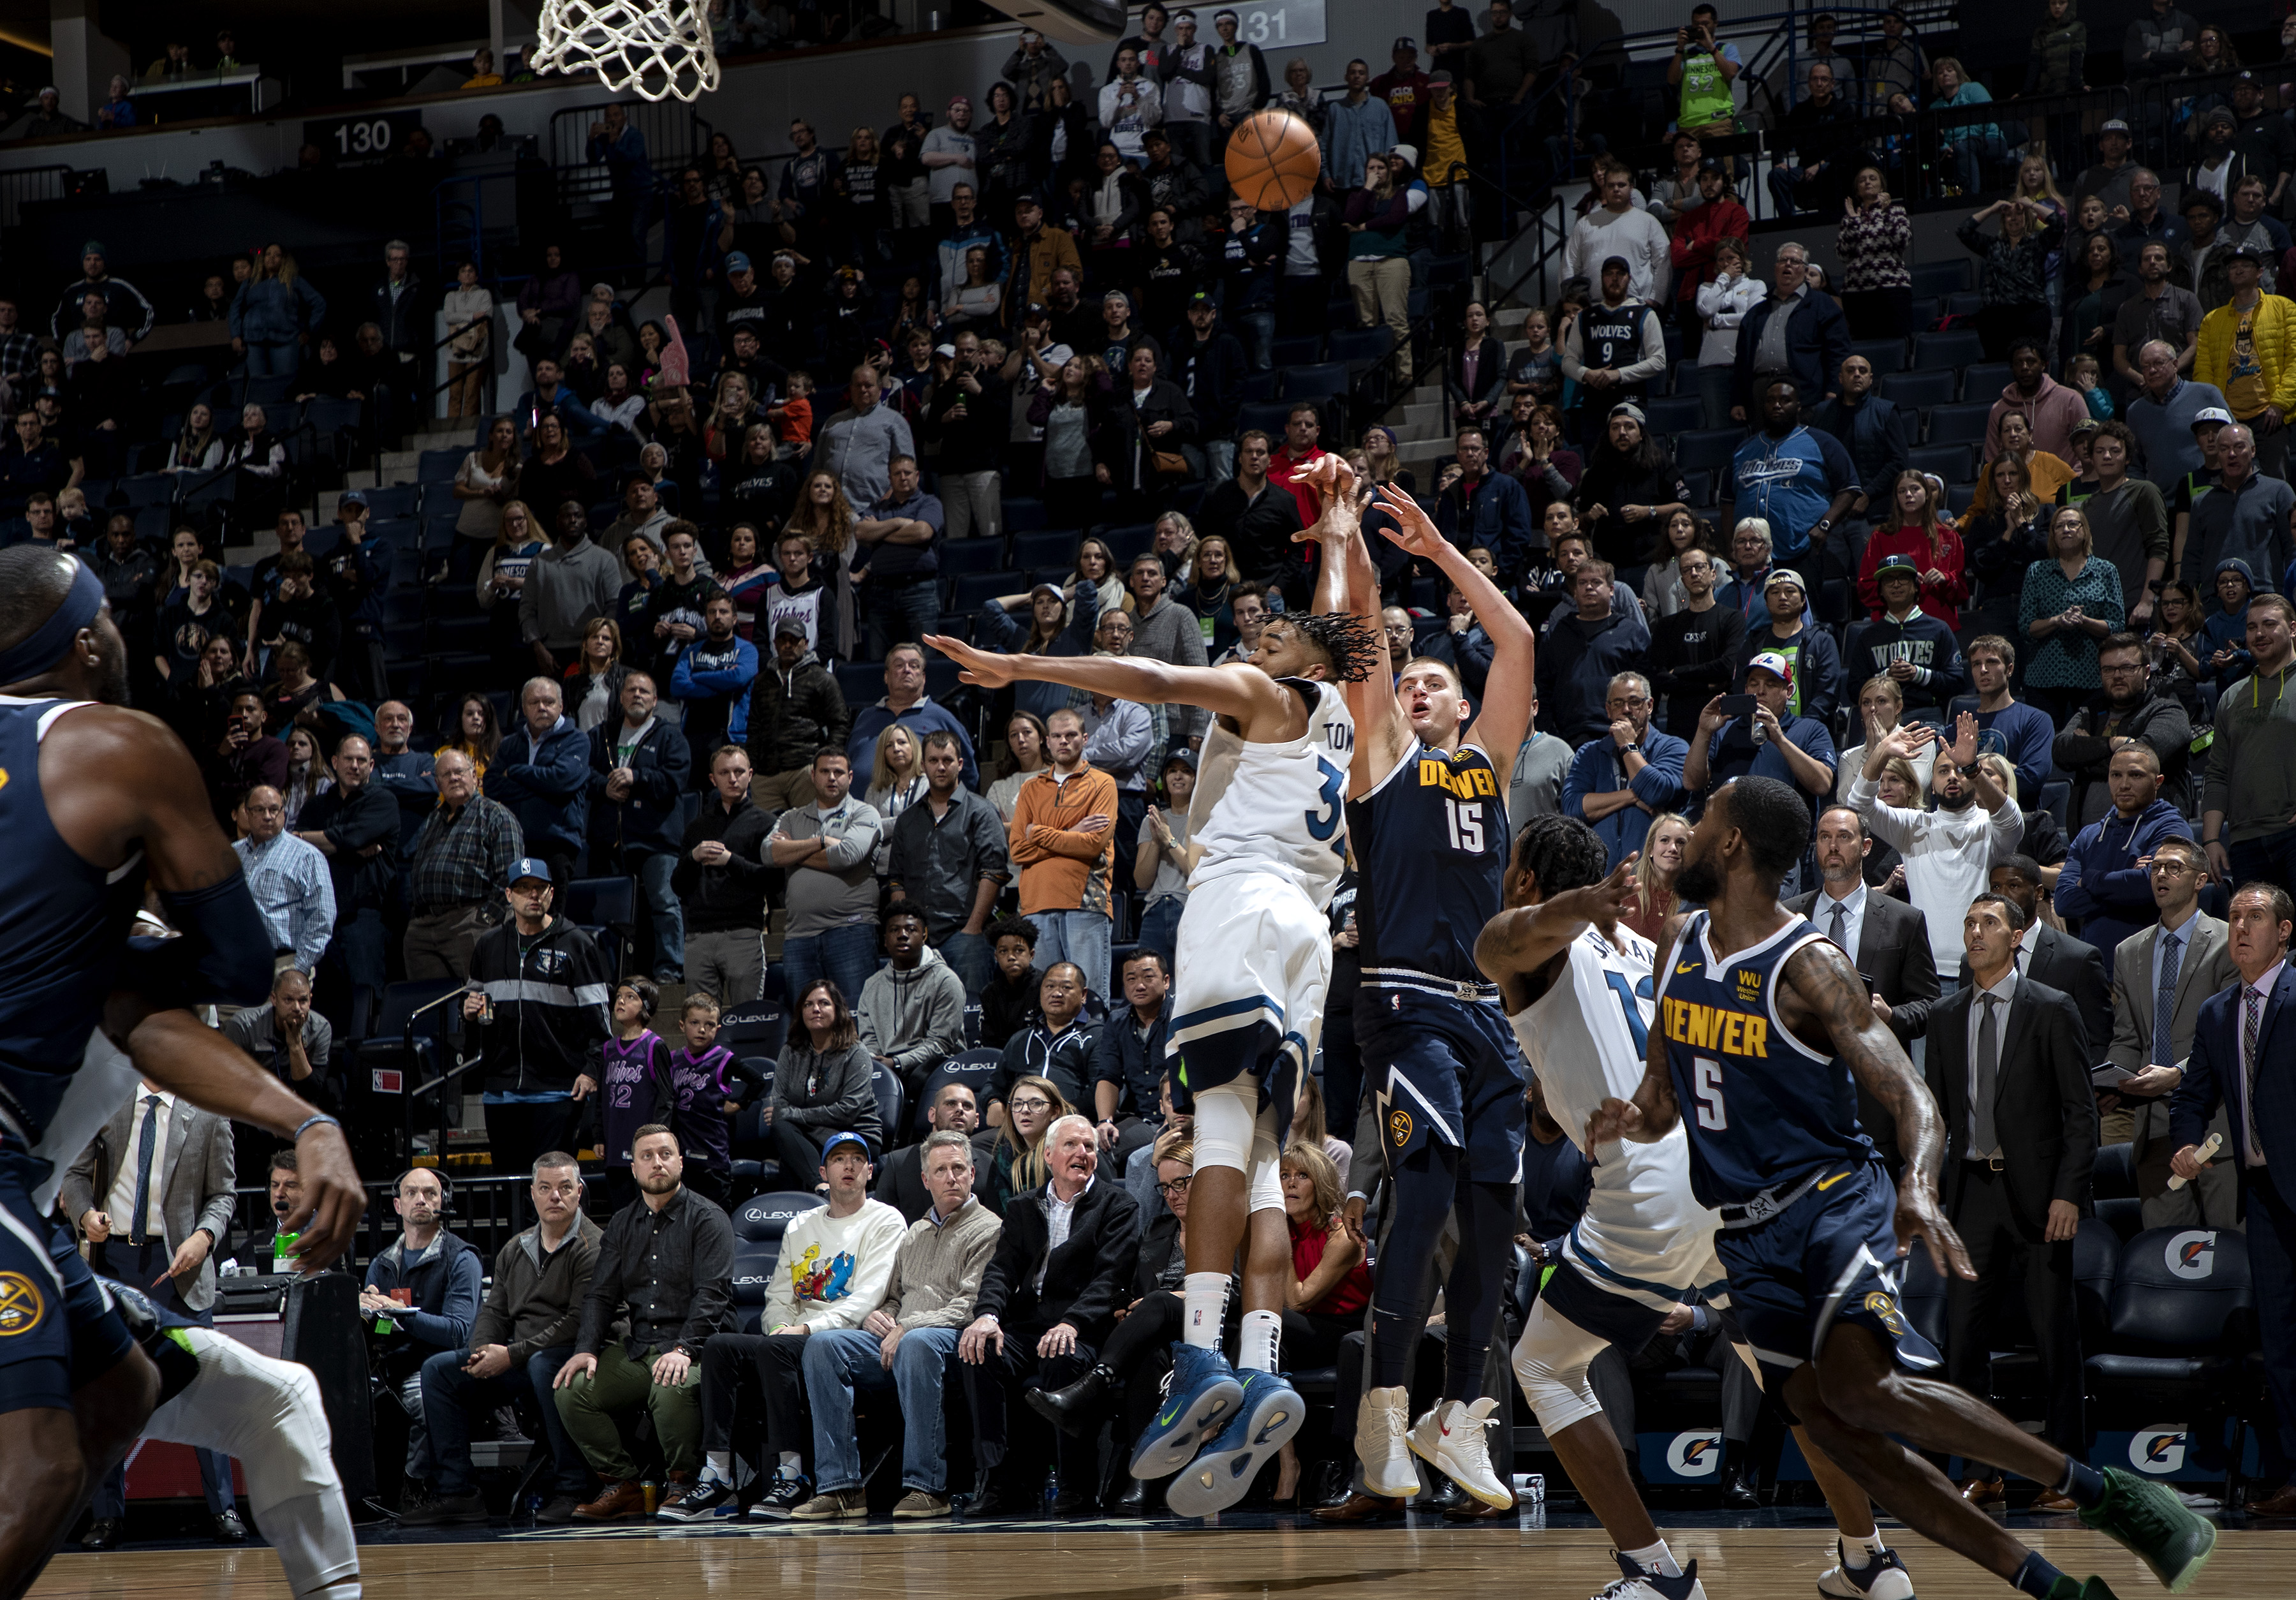 The Minnesota Timberwolves played the Denver Nuggets